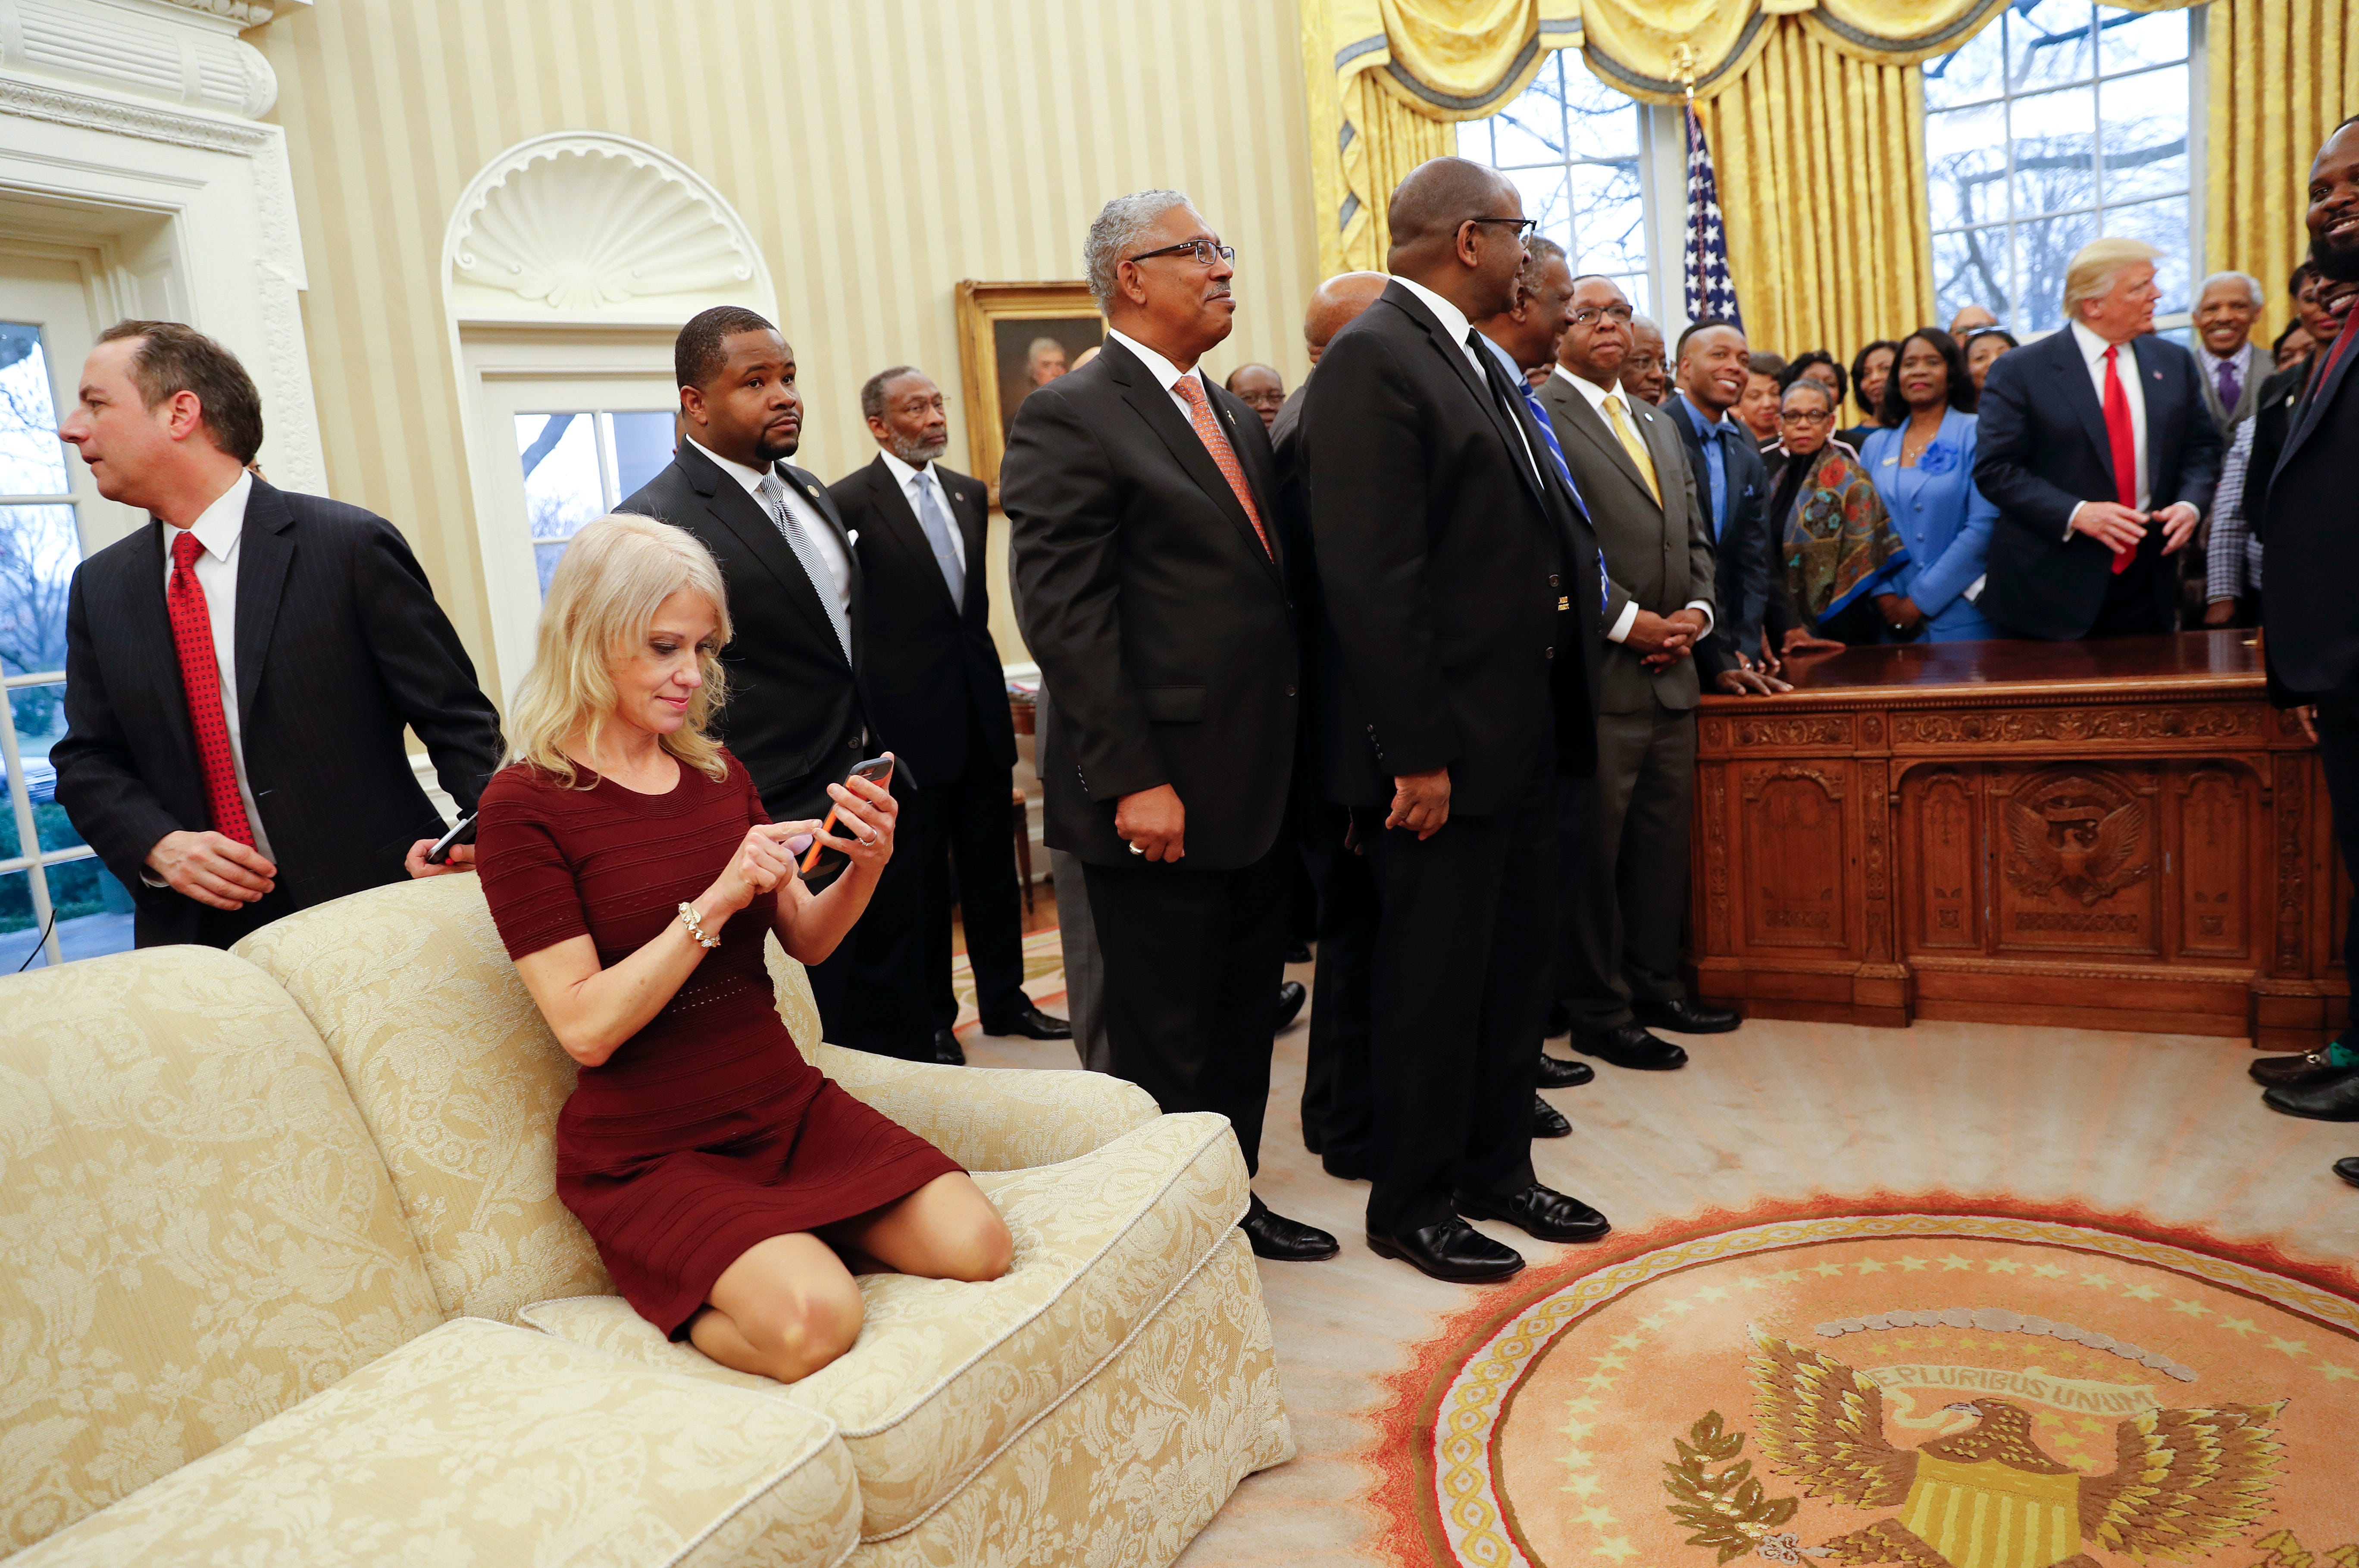 Kellyanne Conway: 'I didn't mean to have my feet on the couch'